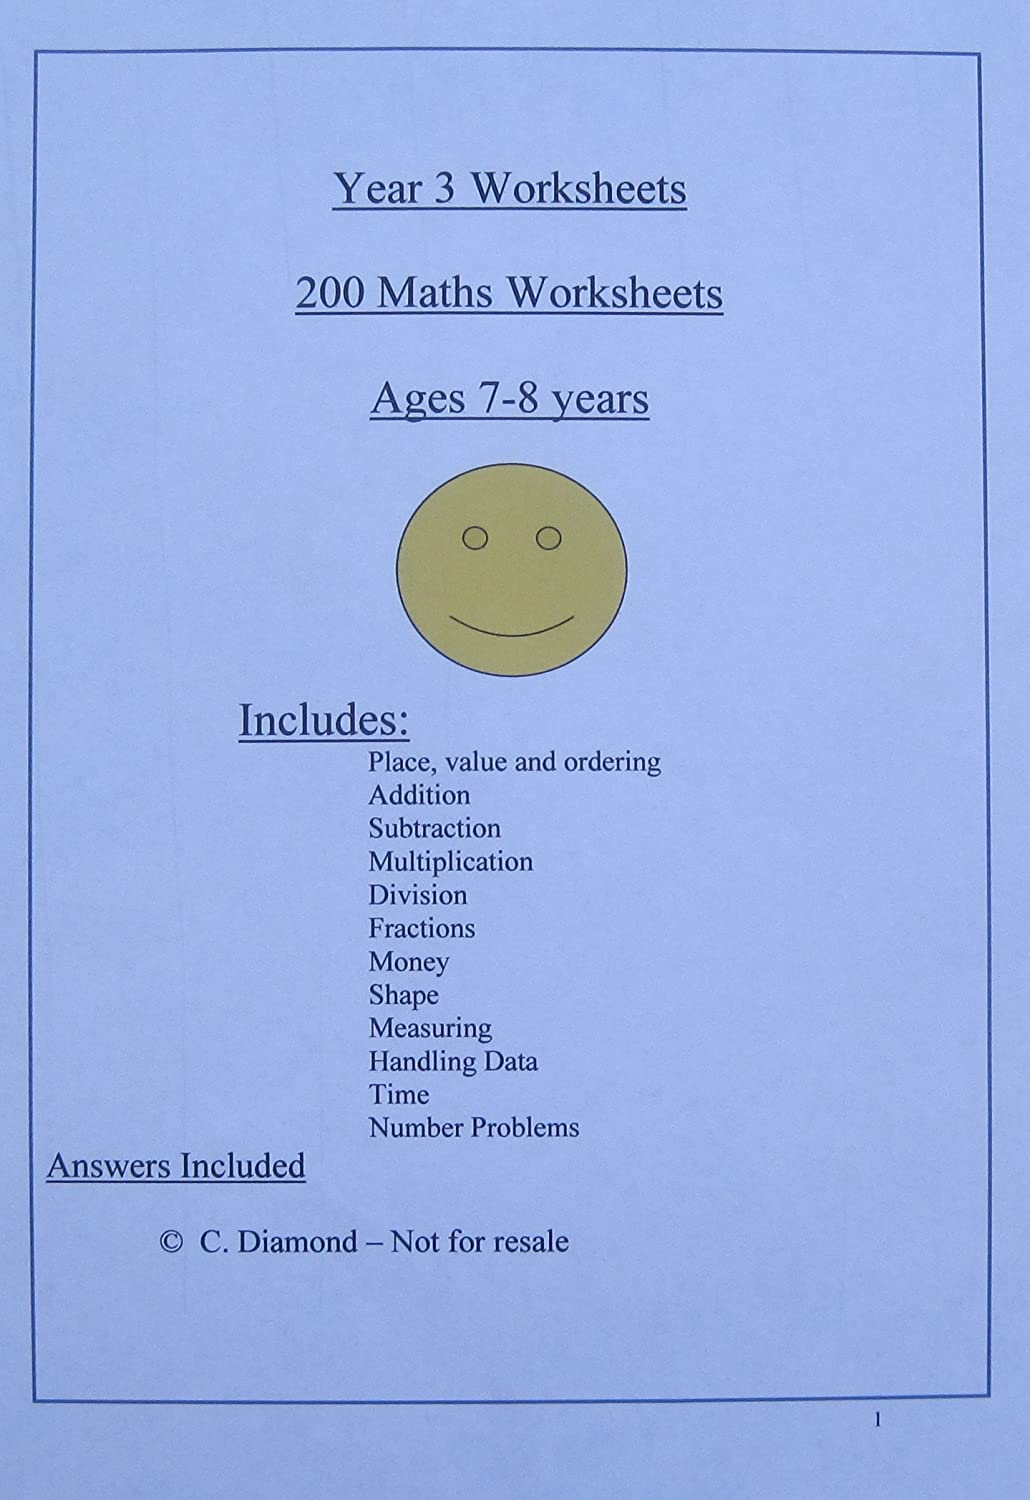 200 year 3 maths worksheets ks2 pdf file to print out - Worksheets To Print Out